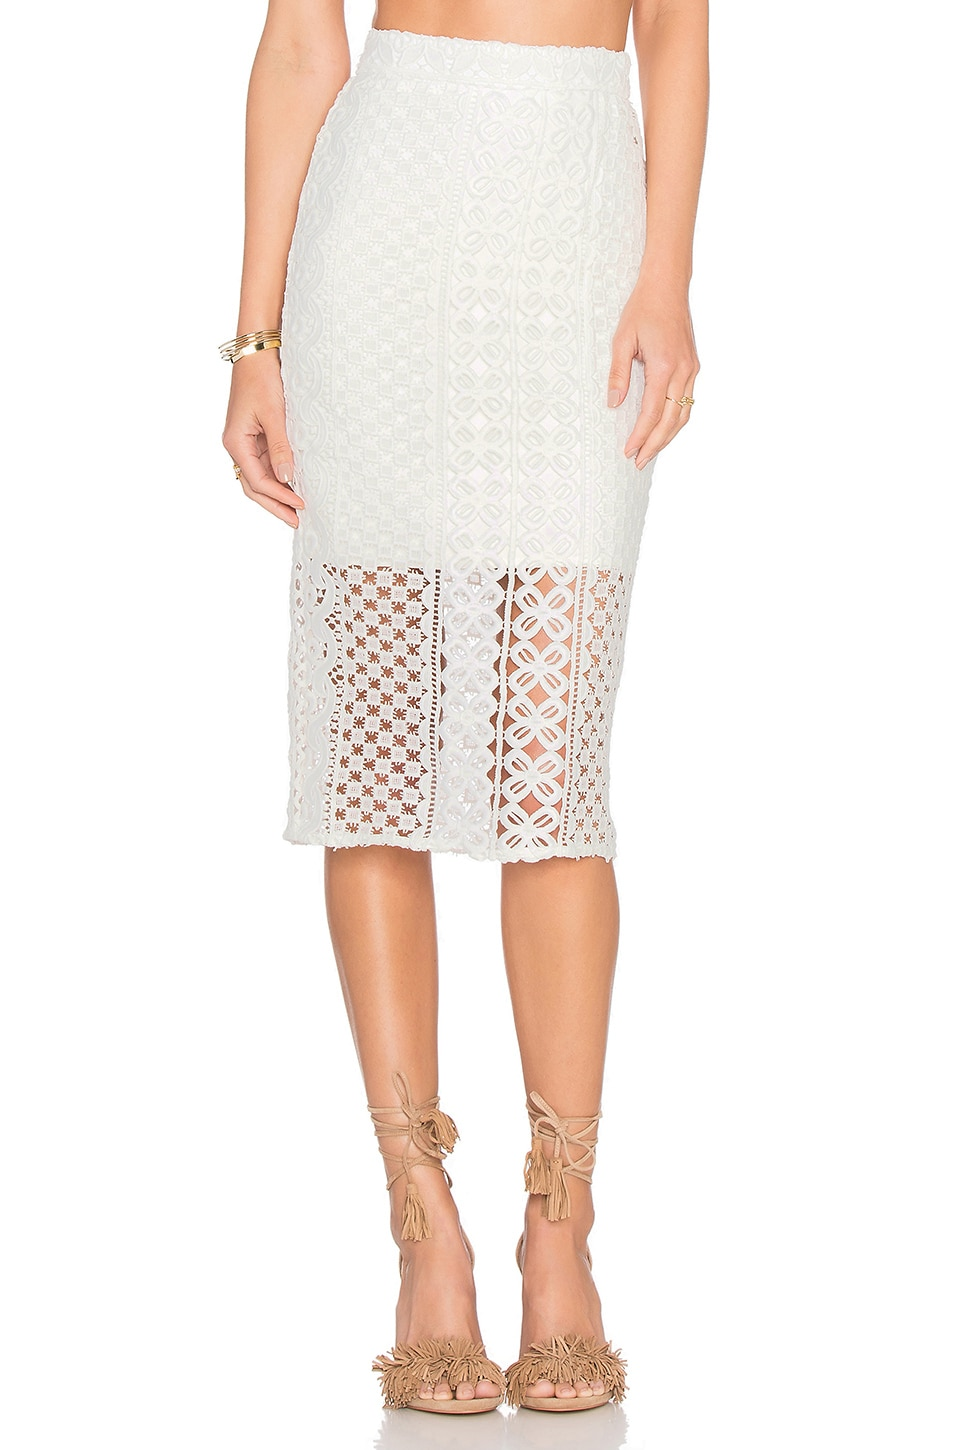 Calista Lace Skirt